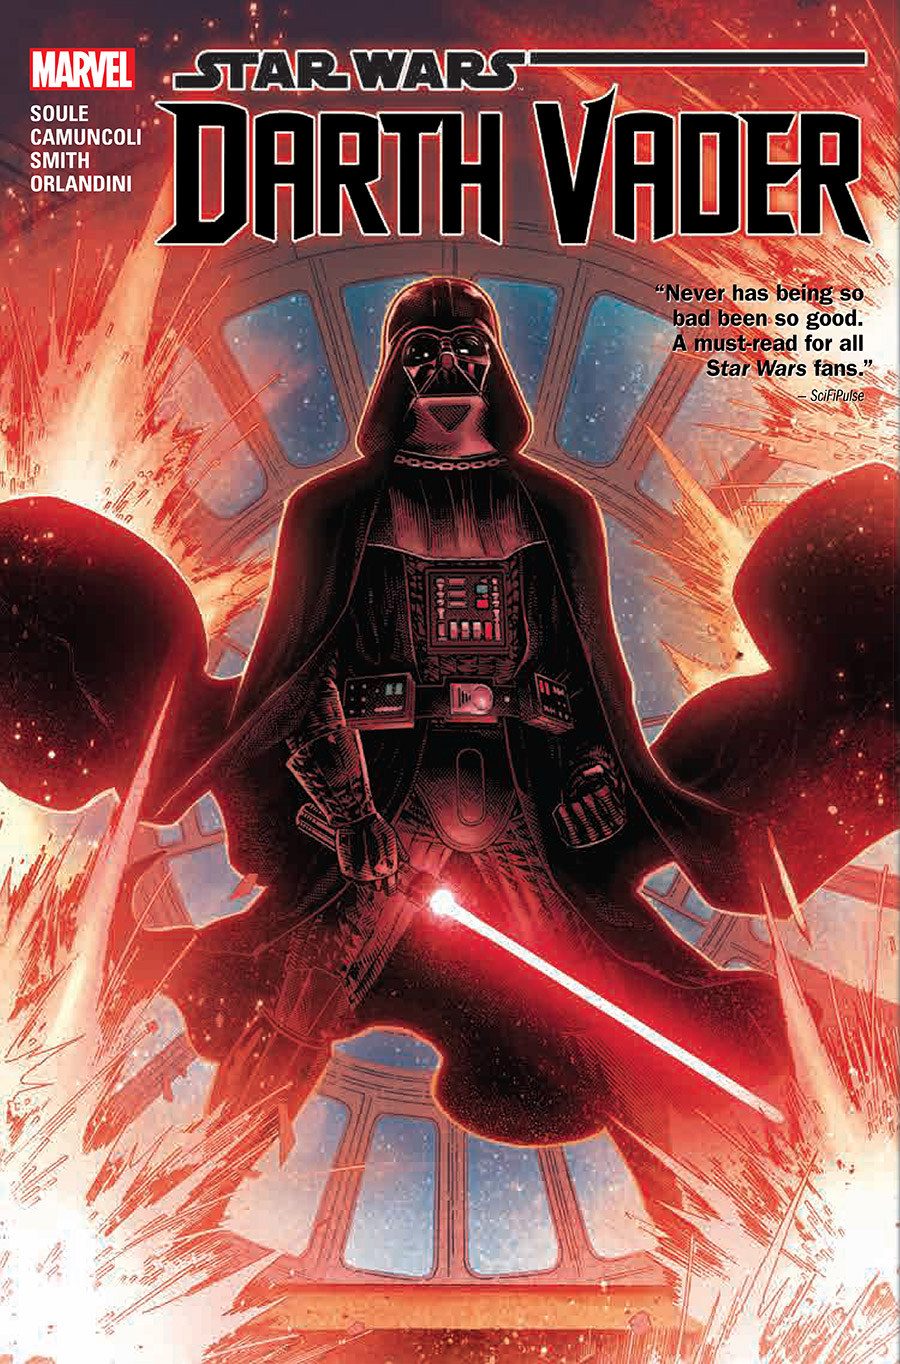 The cover of Marvel's Darth Vader collection.